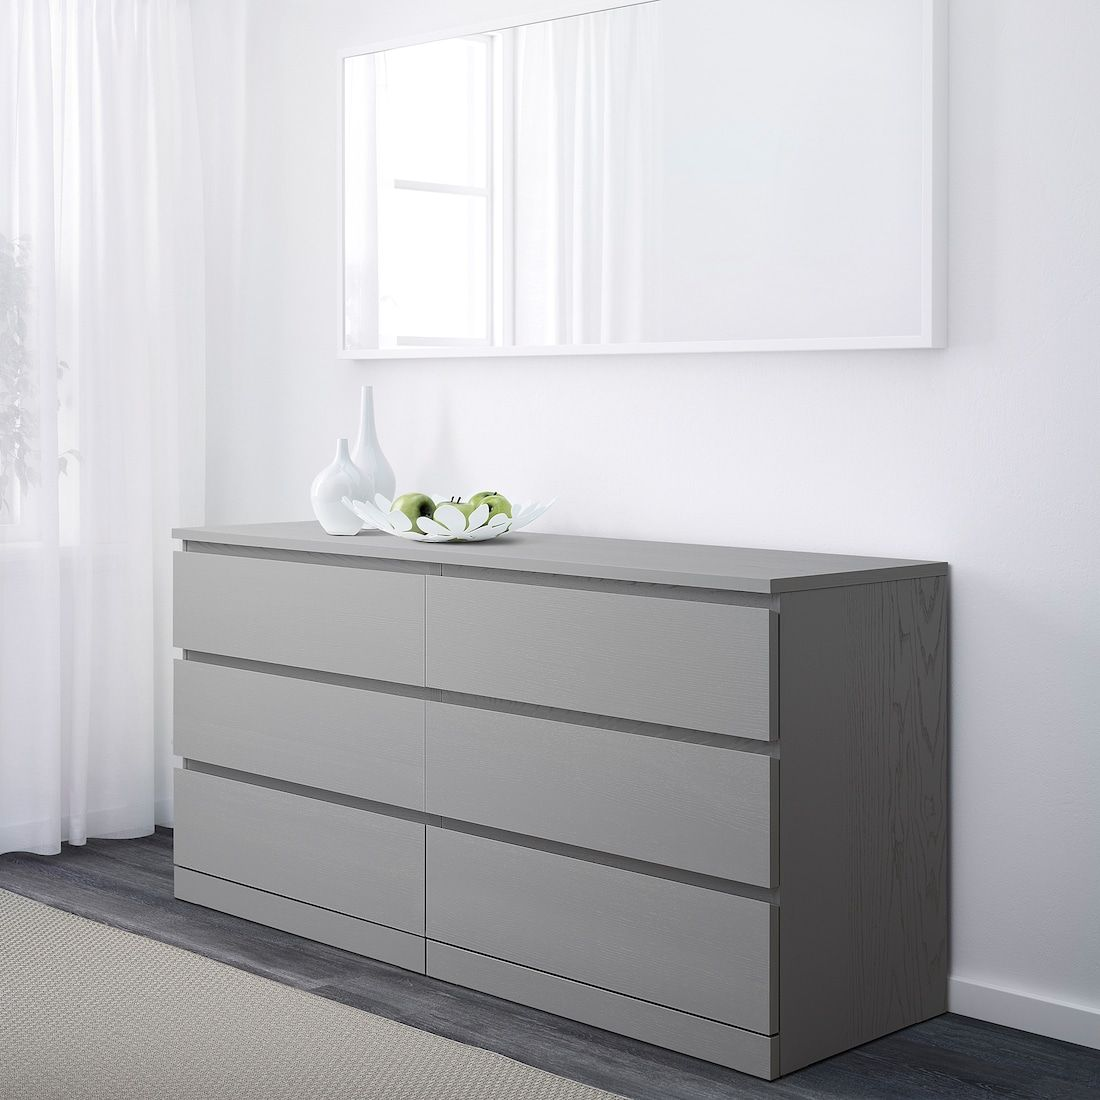 Malm 6 Drawer Dresser Gray Stained 63x30 3 4 Dresser Drawers